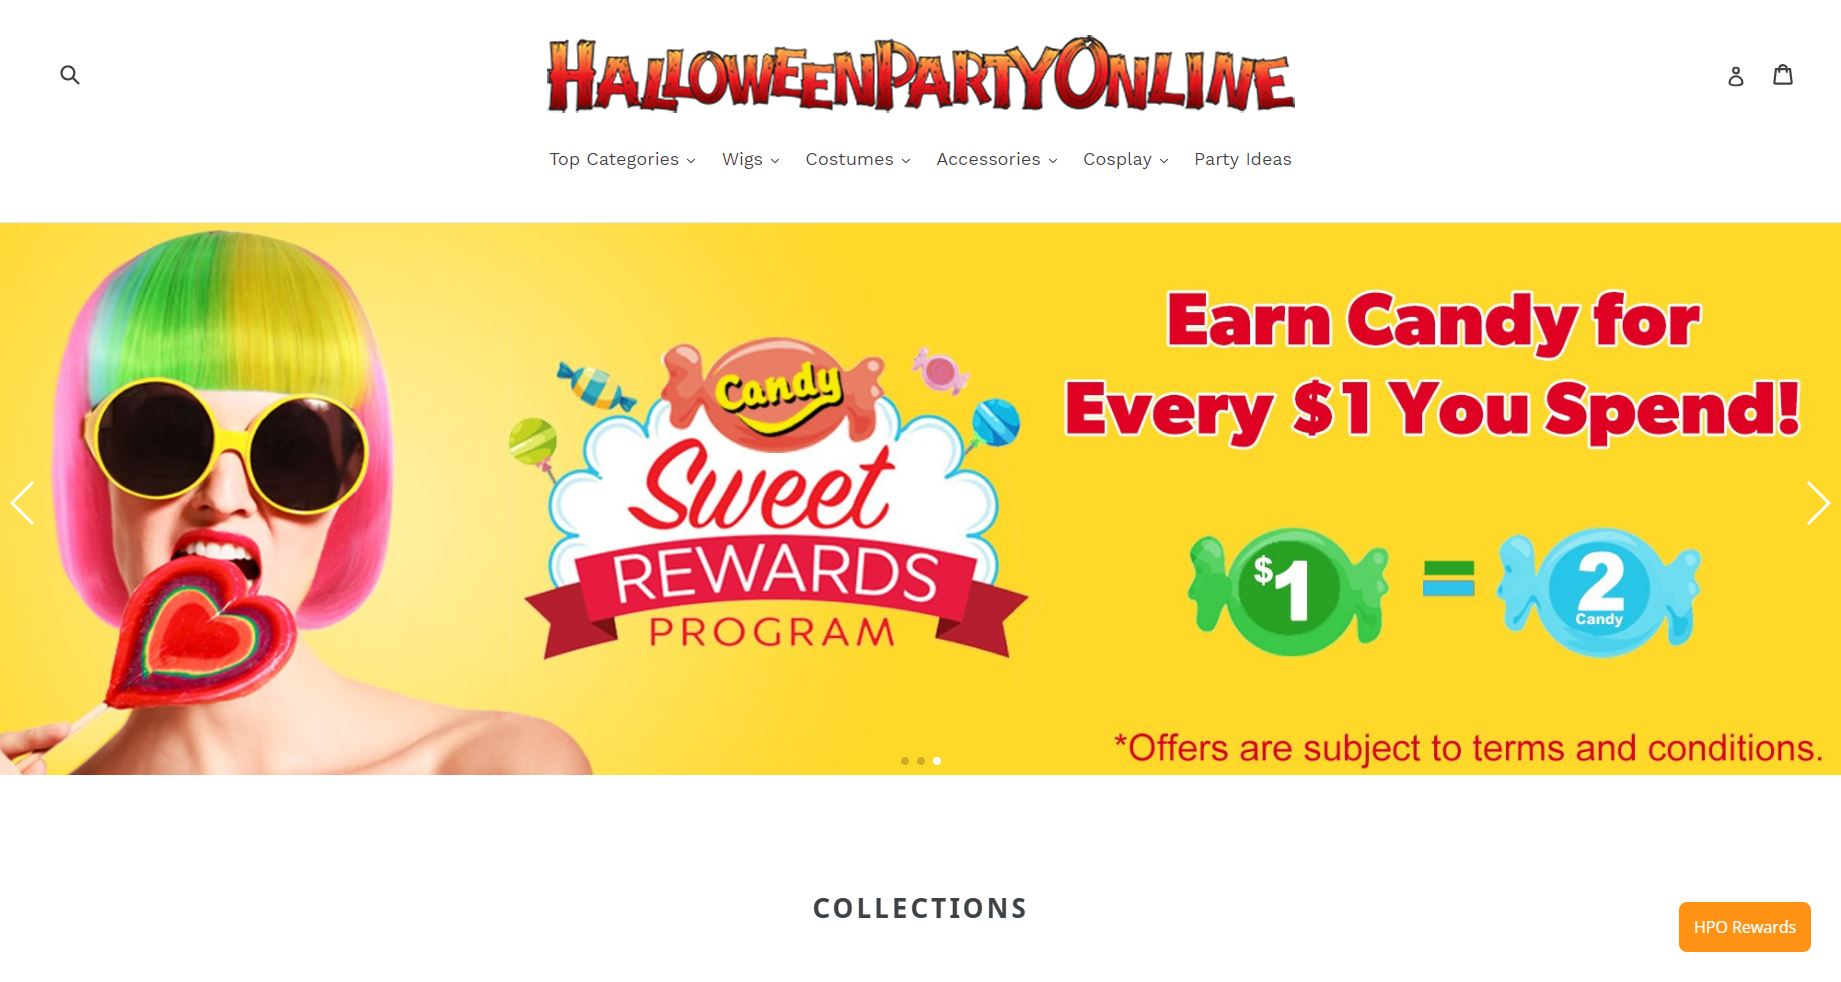 Halloween Party Online